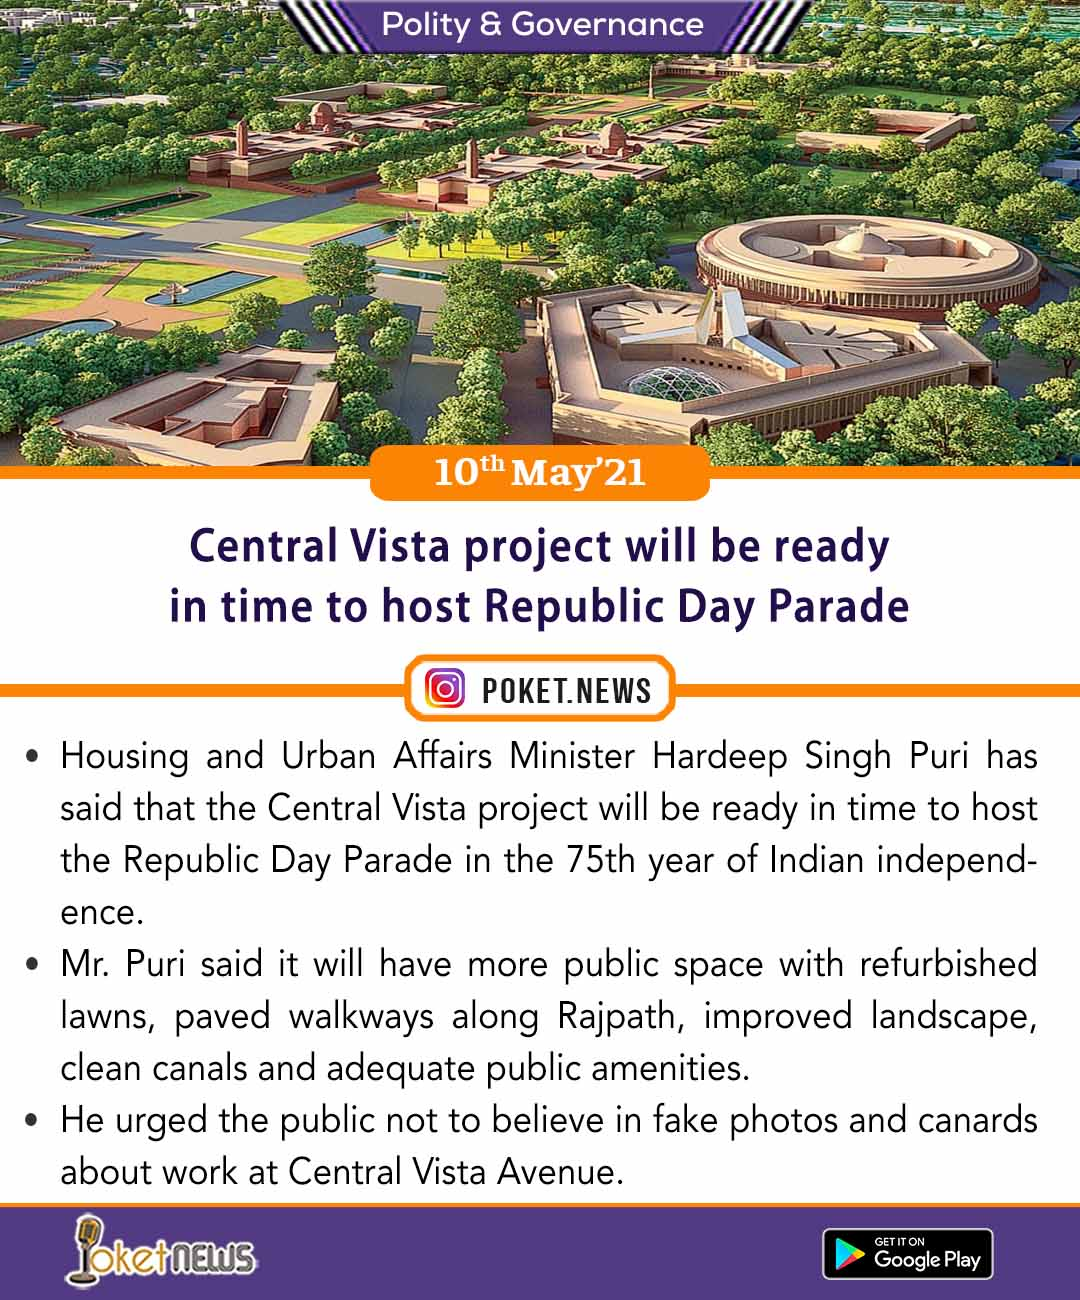 Central Vista project will be ready in time to host Republic Day Parade